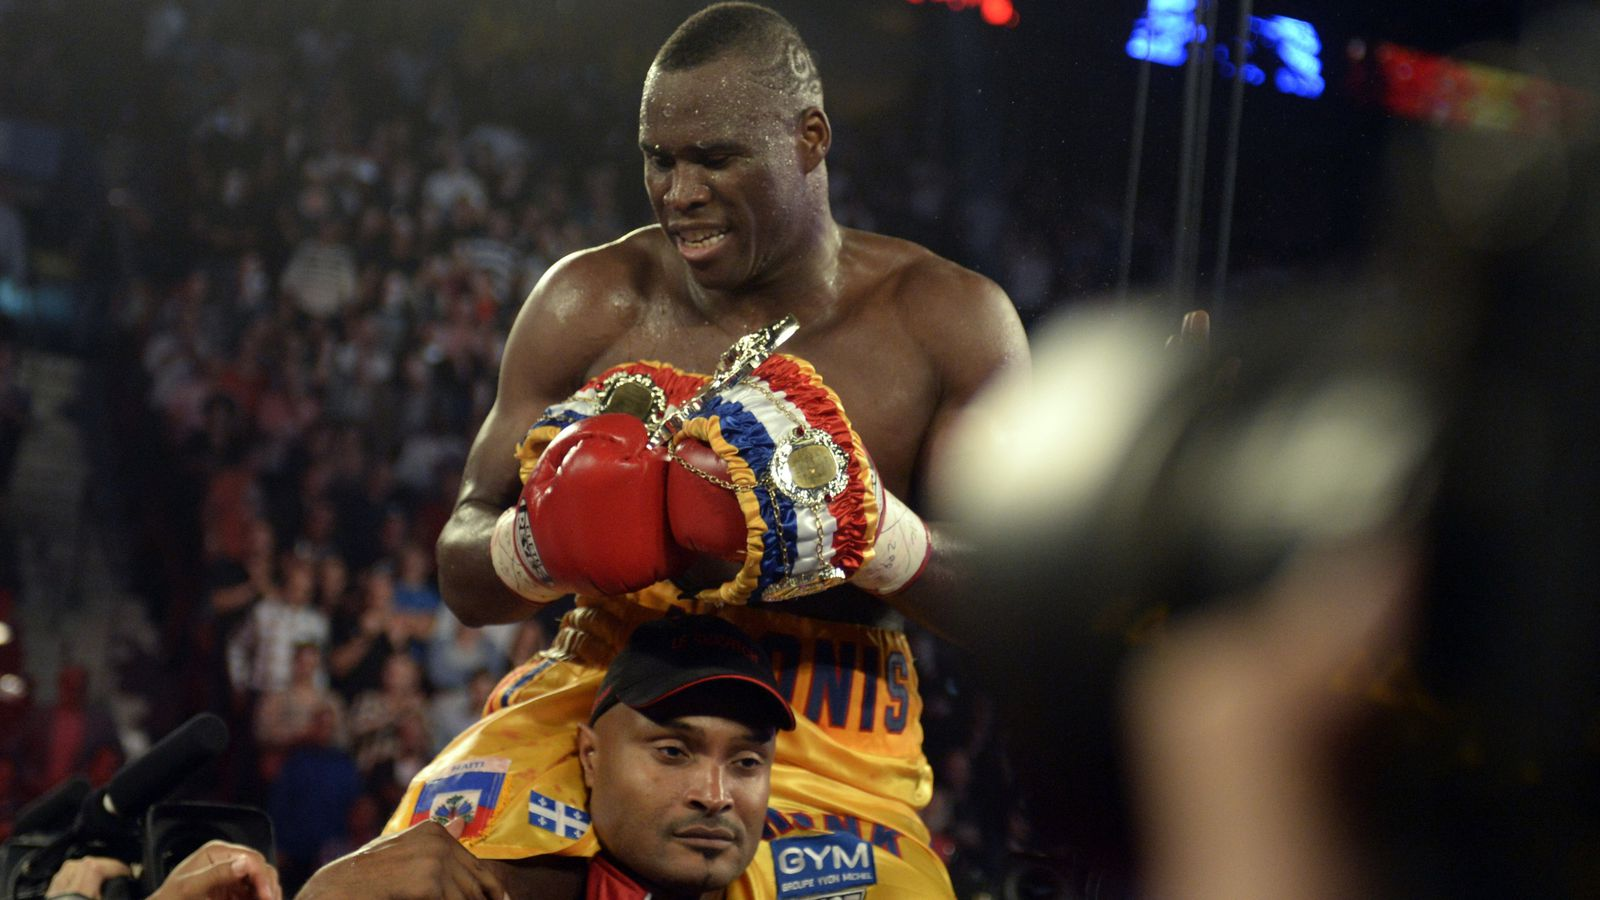 WBC Light Heavyweight World Champion Adonis Superman Stevenson is set to make his ninth and perhaps most difficult world title defense when he faces